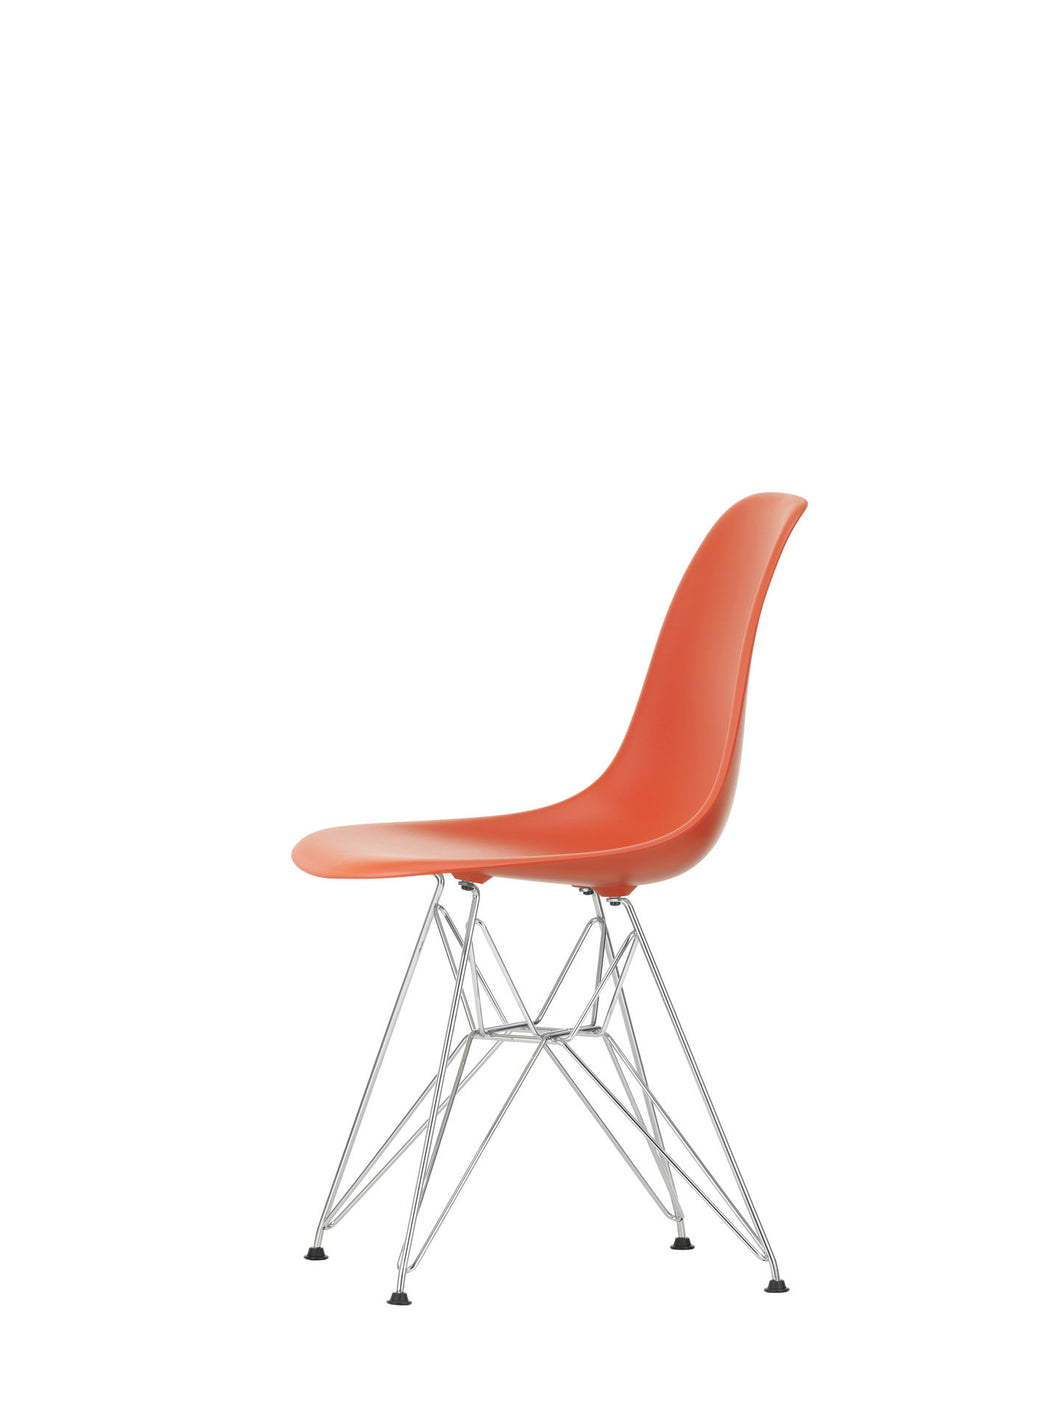 Vitra Eames - DSR - Chrome Base Poppy Red